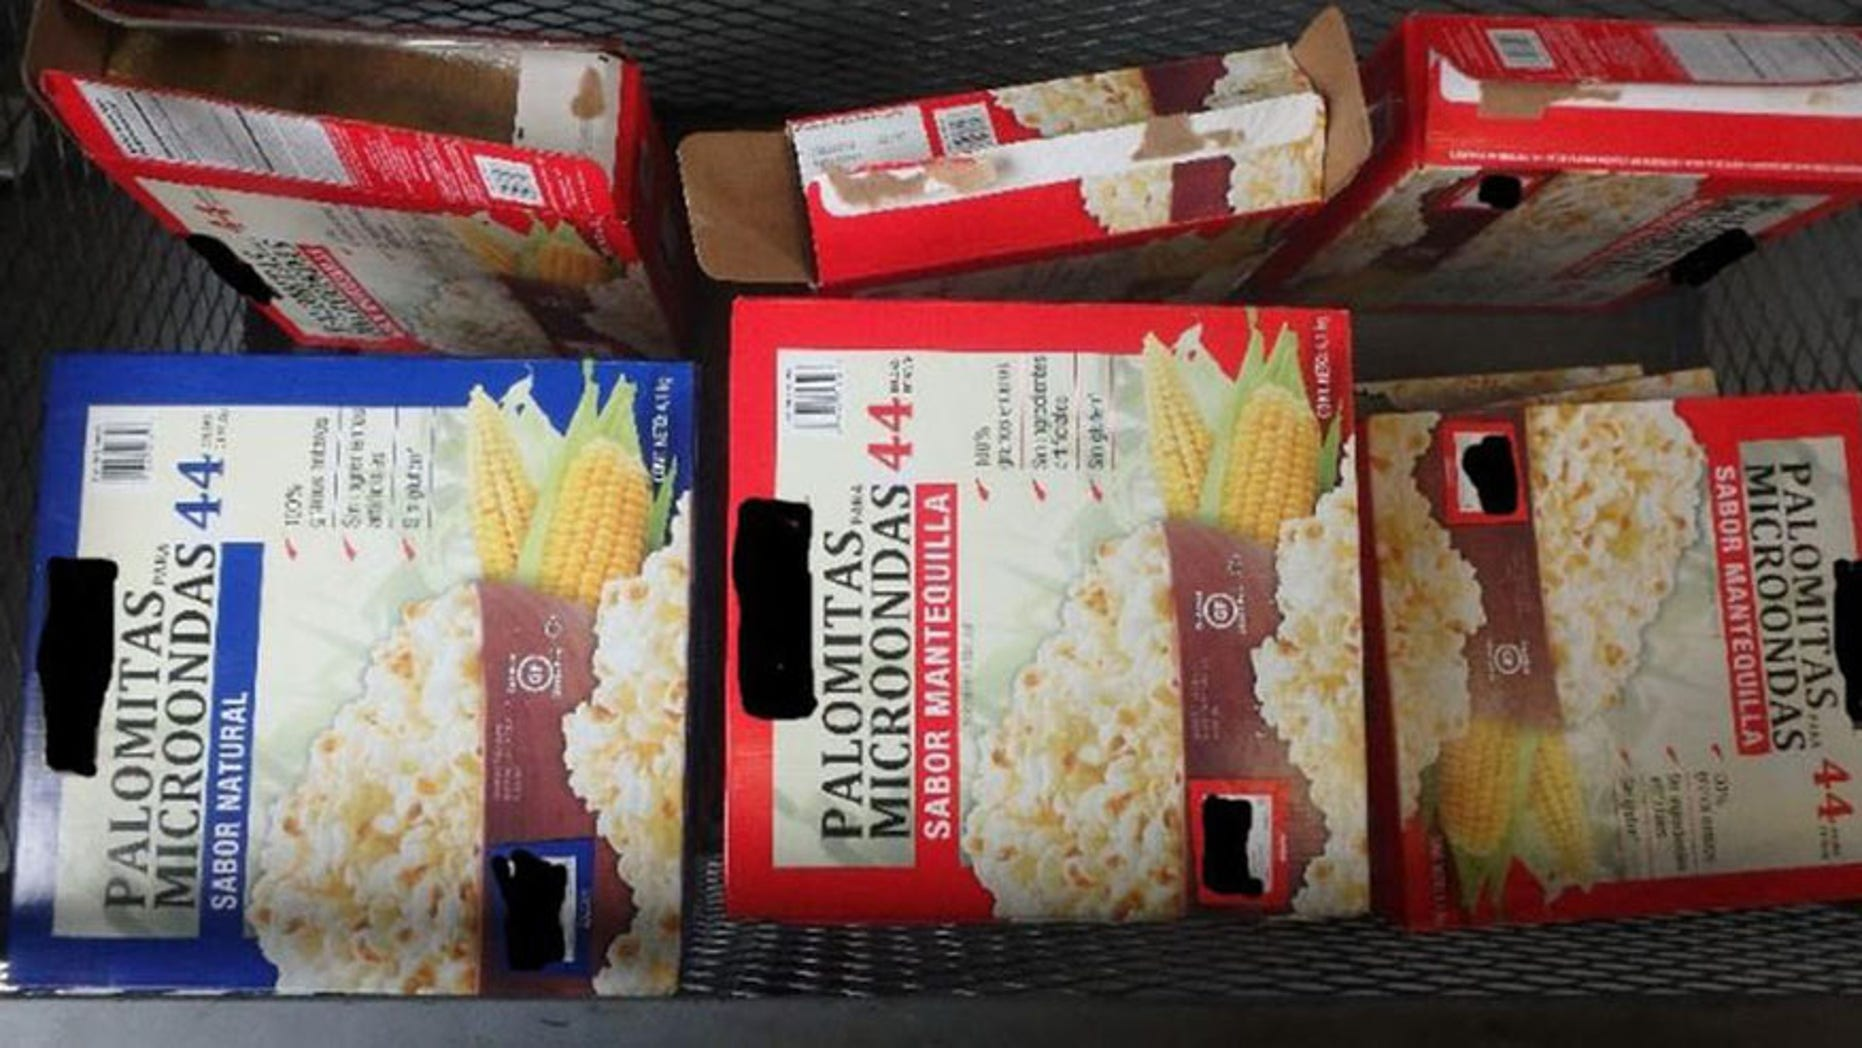 CBP officers found 15 packages of meth hidden inside boxes of popcorn.